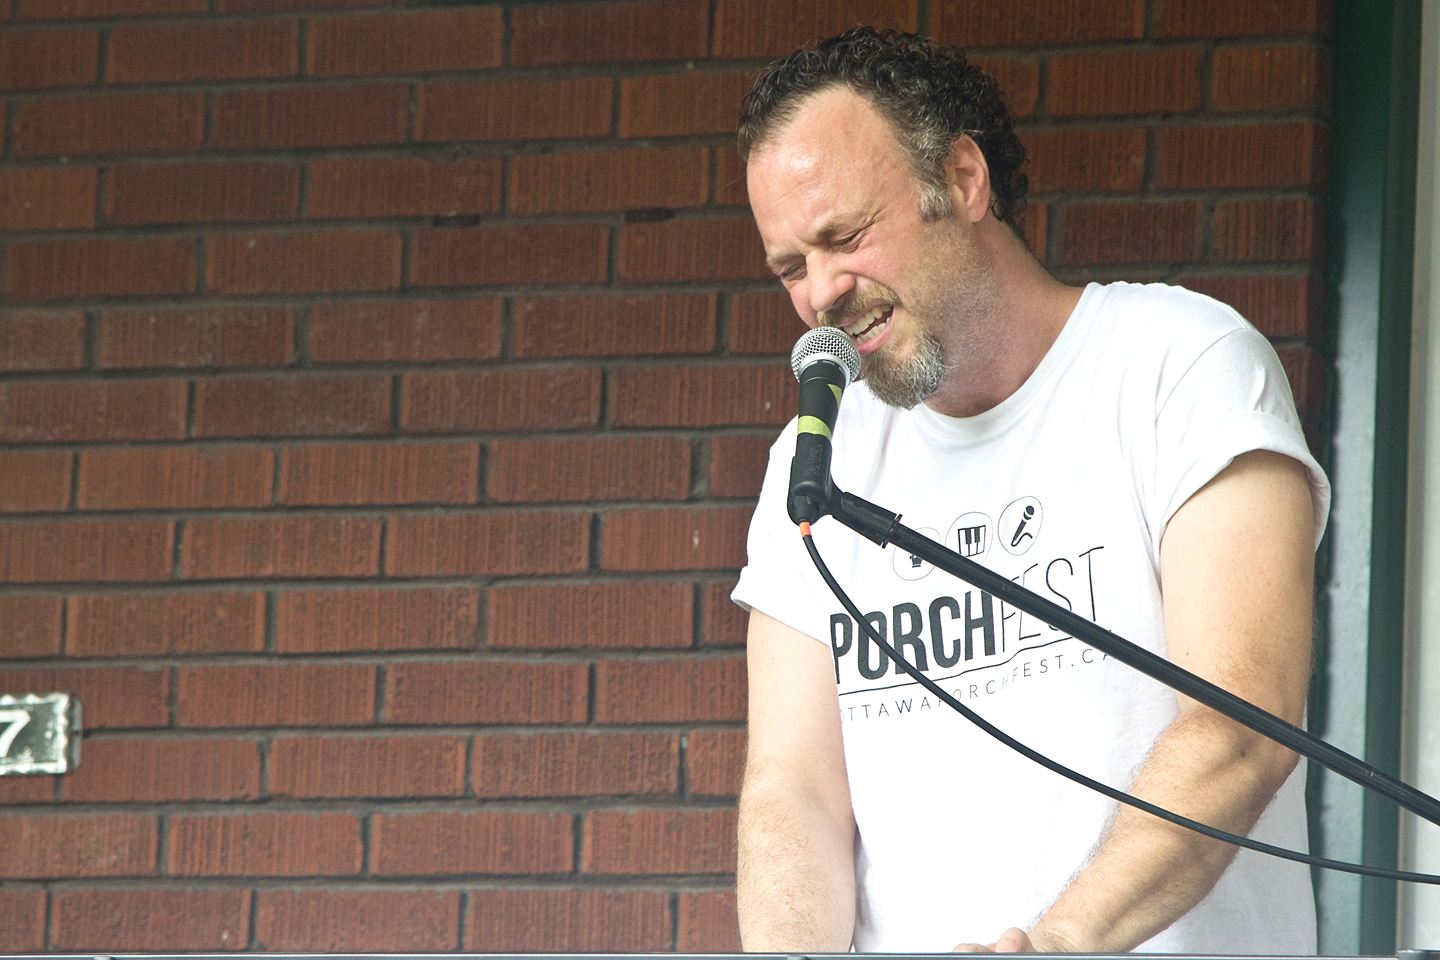 porchfest-2016-1-of-1